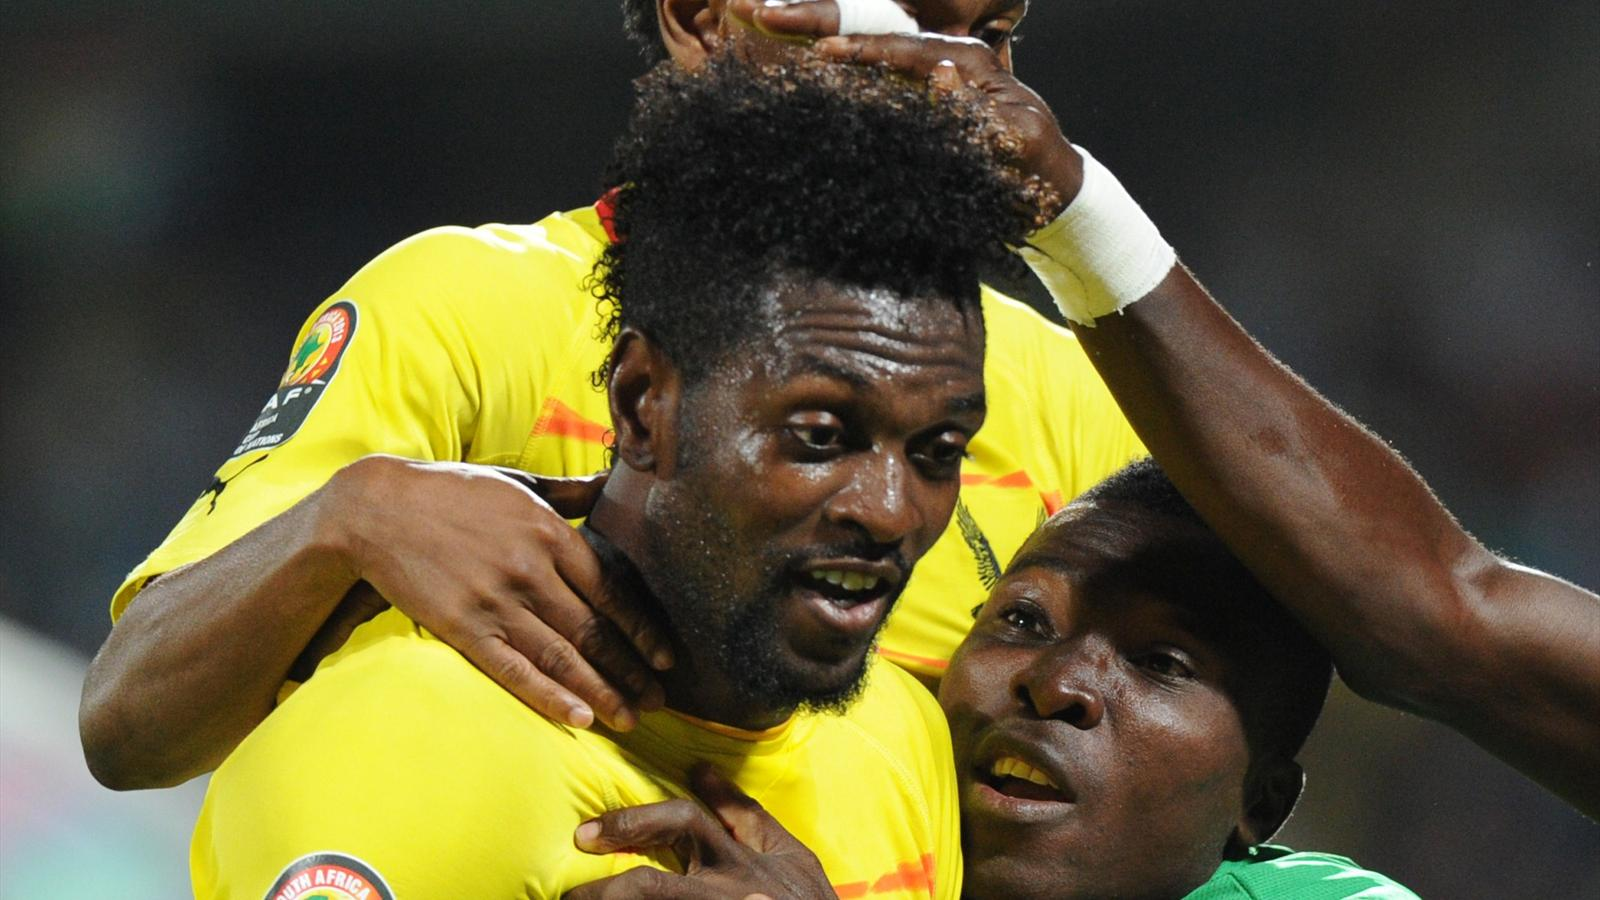 Togo's forward Emmanuel Adebayor (L) celebrates with teammates after scoring during the 2013 African Cup of Nations match Algeria vs Togo at Royal Bafokeng stadium in Rustenburg